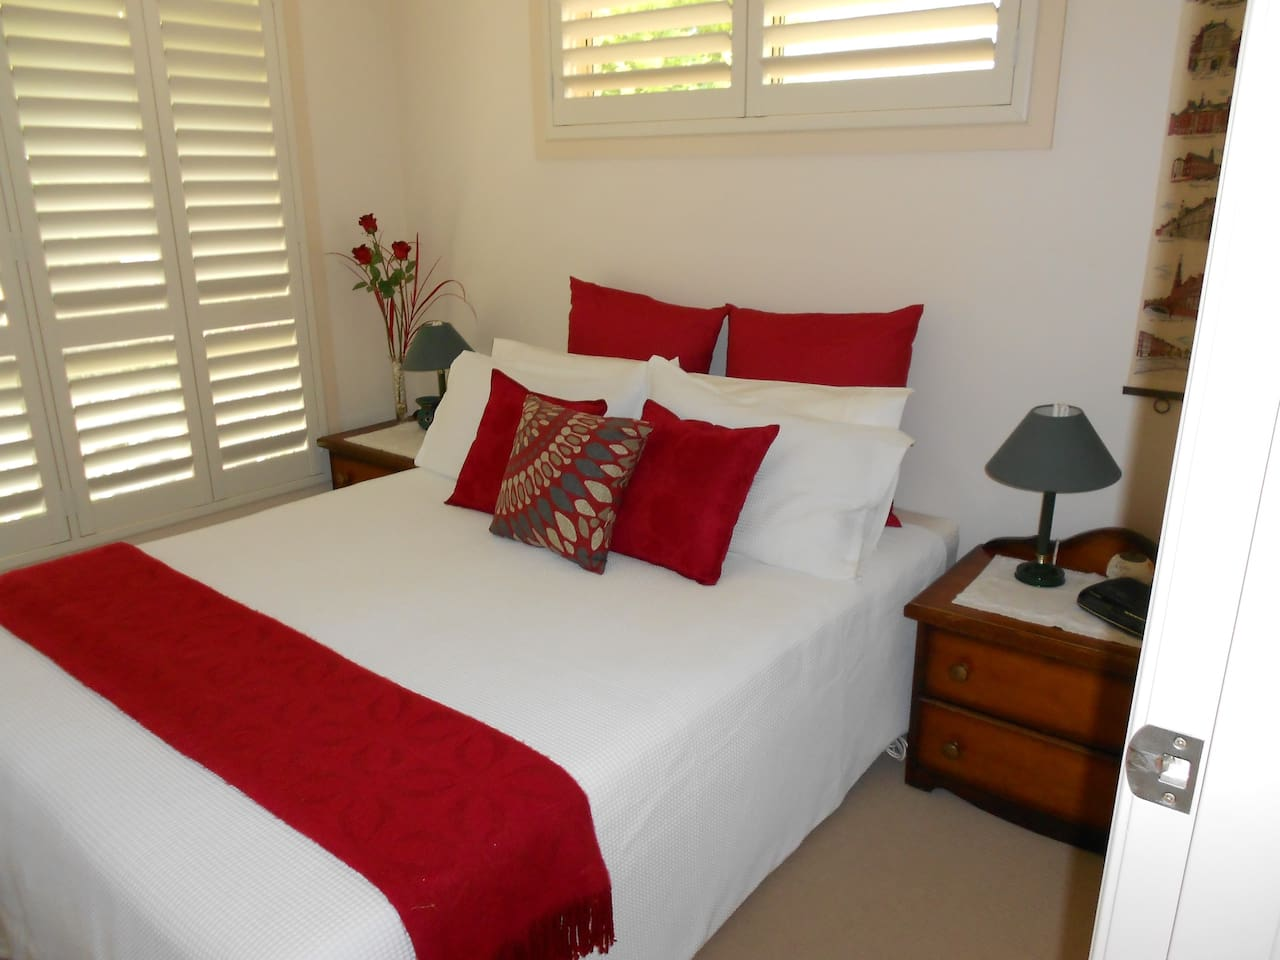 Light airy room with queen bed, bedside tables and built-in wardrobe.  Bedroom overlooks front garden.